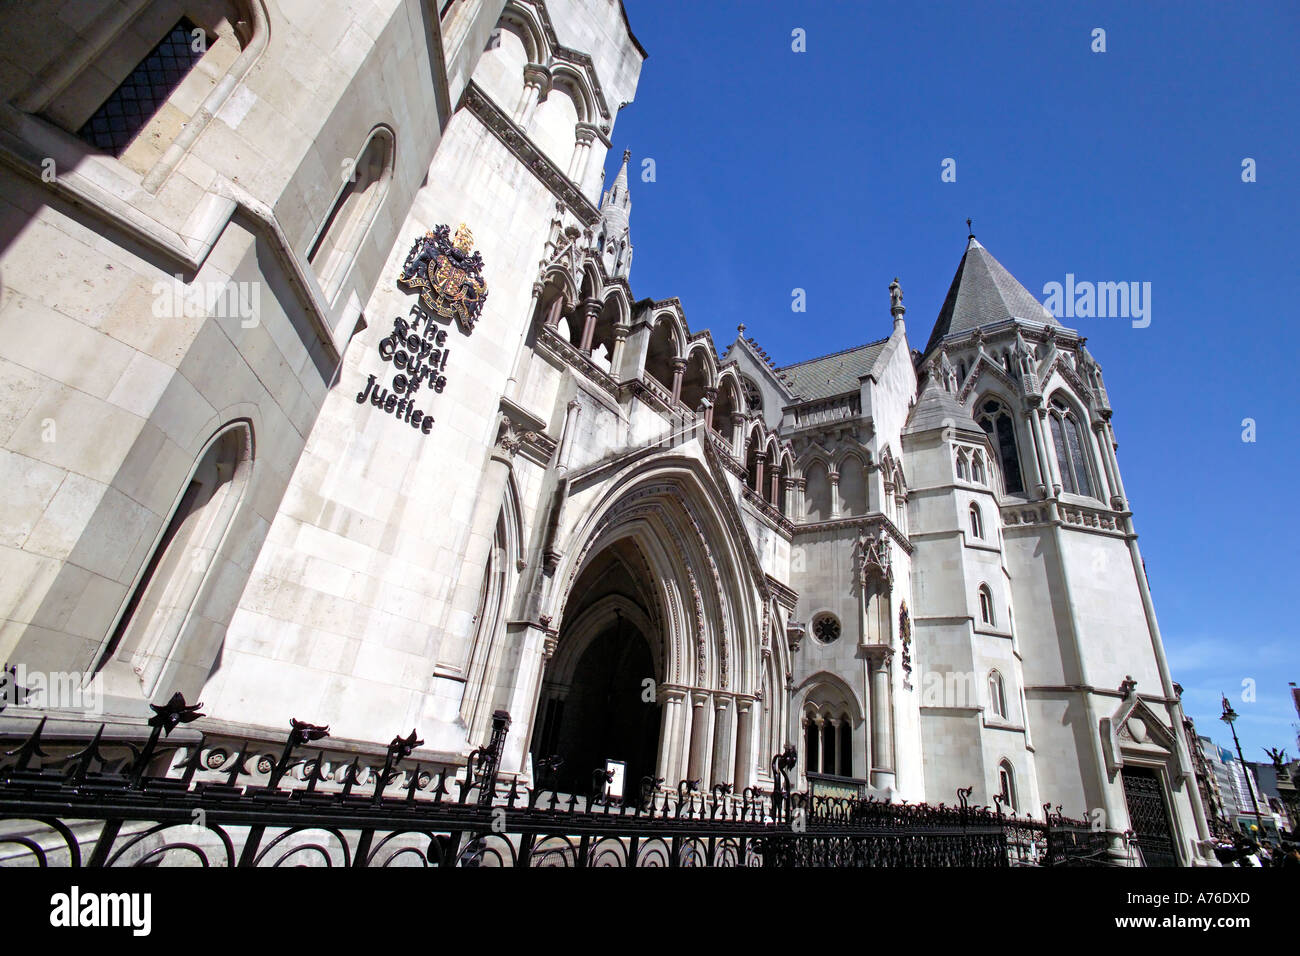 Wide angle view of the main entrance to the Royal Courts of Justice aka Law Courts against a blue sky. Stock Photo